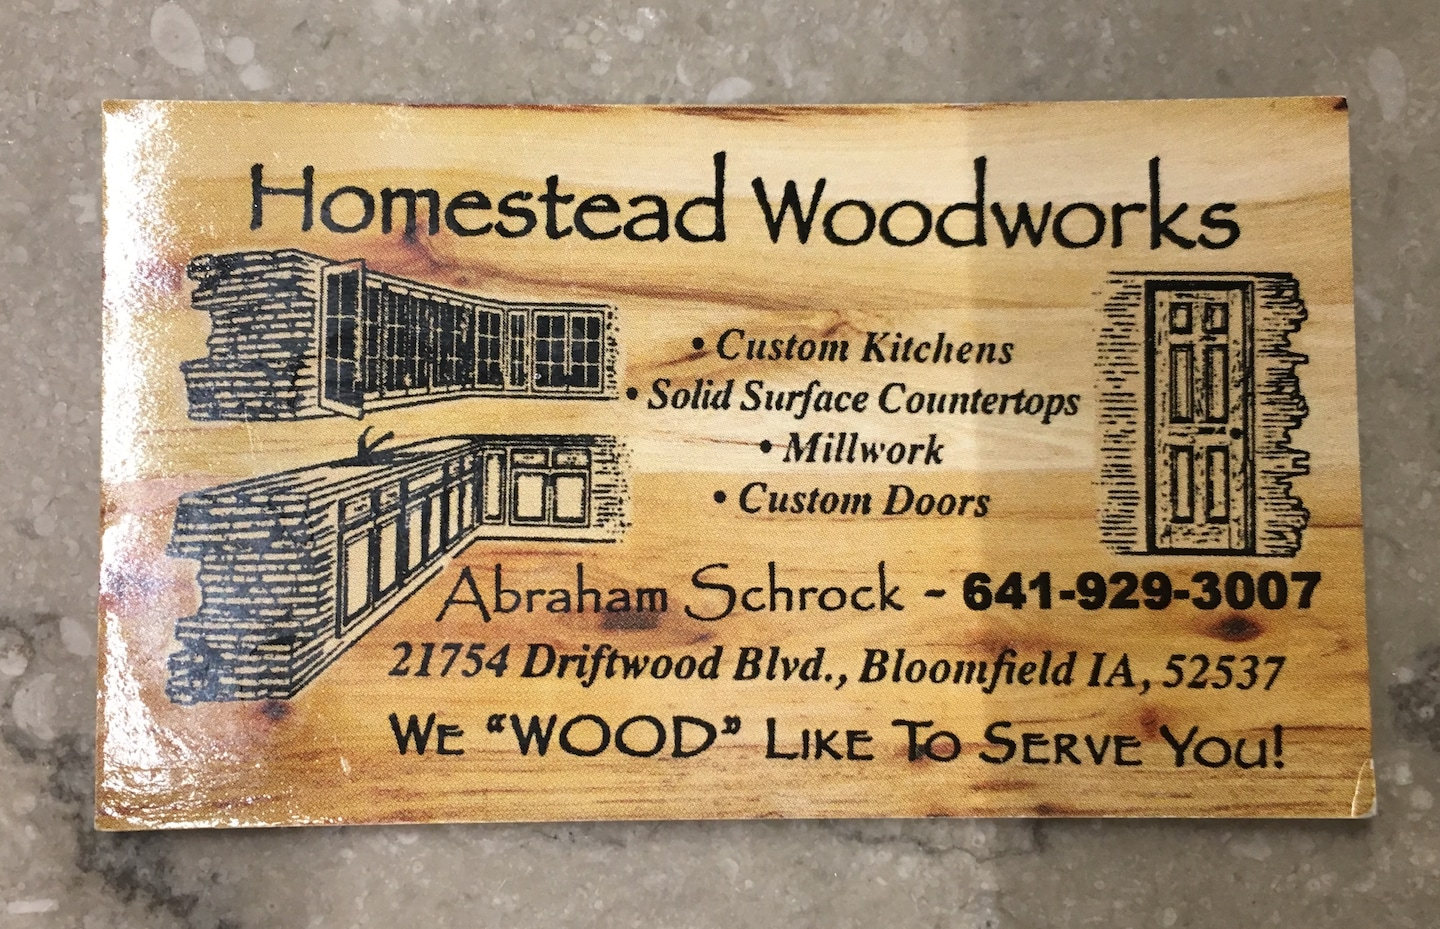 Homestead Woodworks